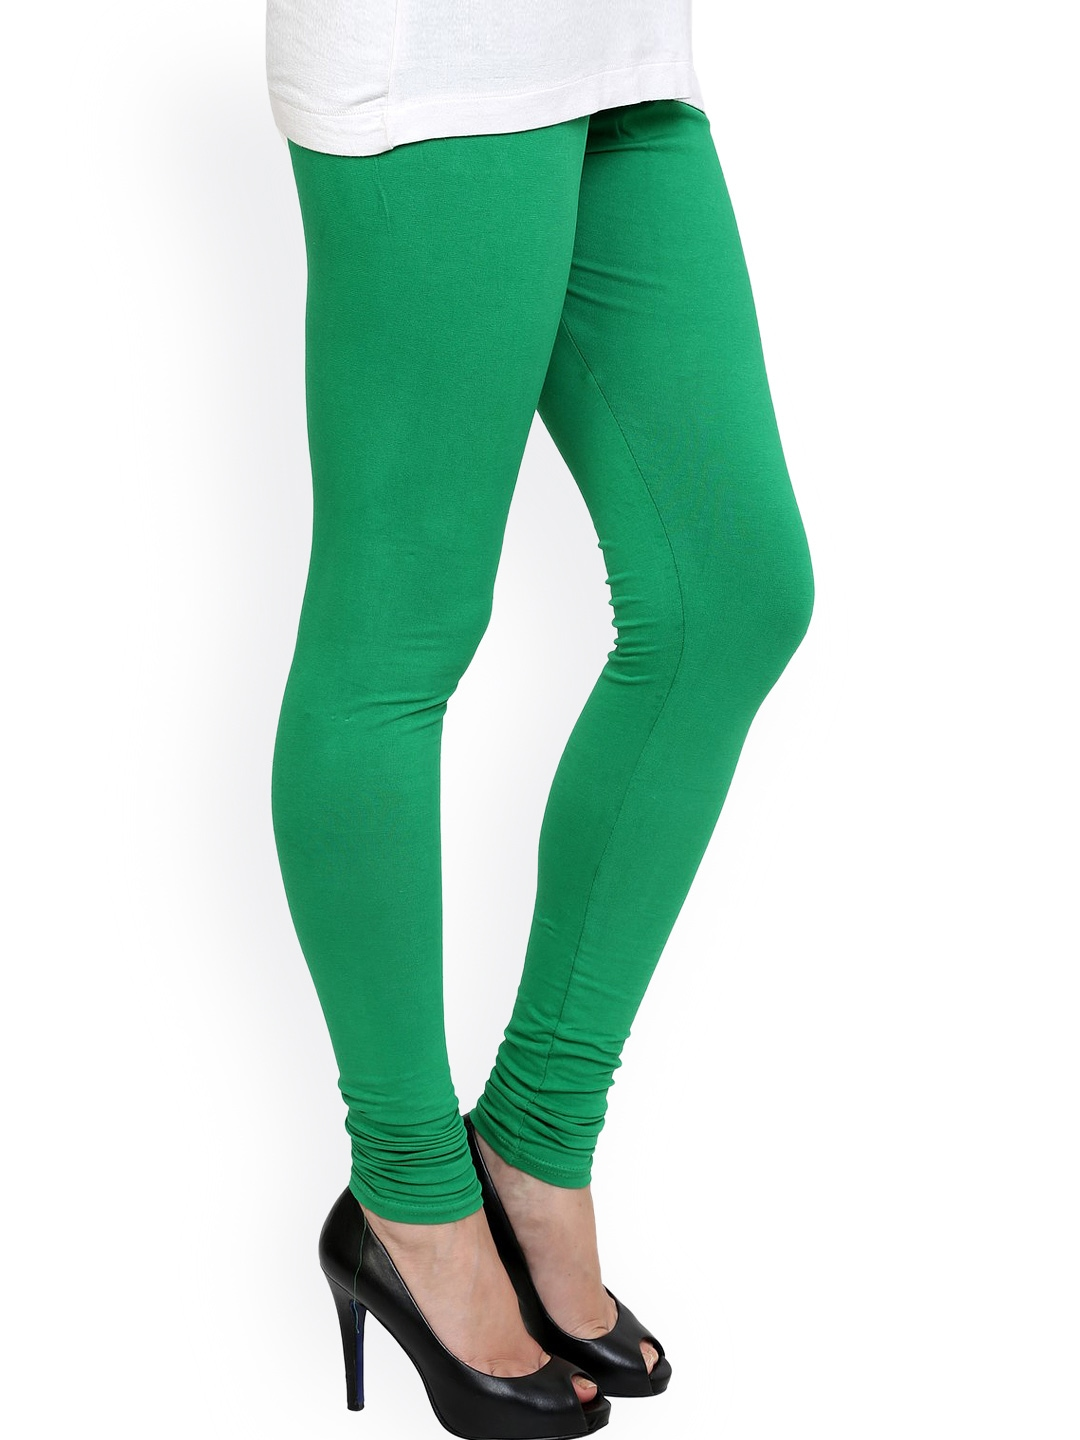 Enjoy free shipping and easy returns every day at Kohl's. Find great deals on Womens Green Leggings Bottoms at Kohl's today!